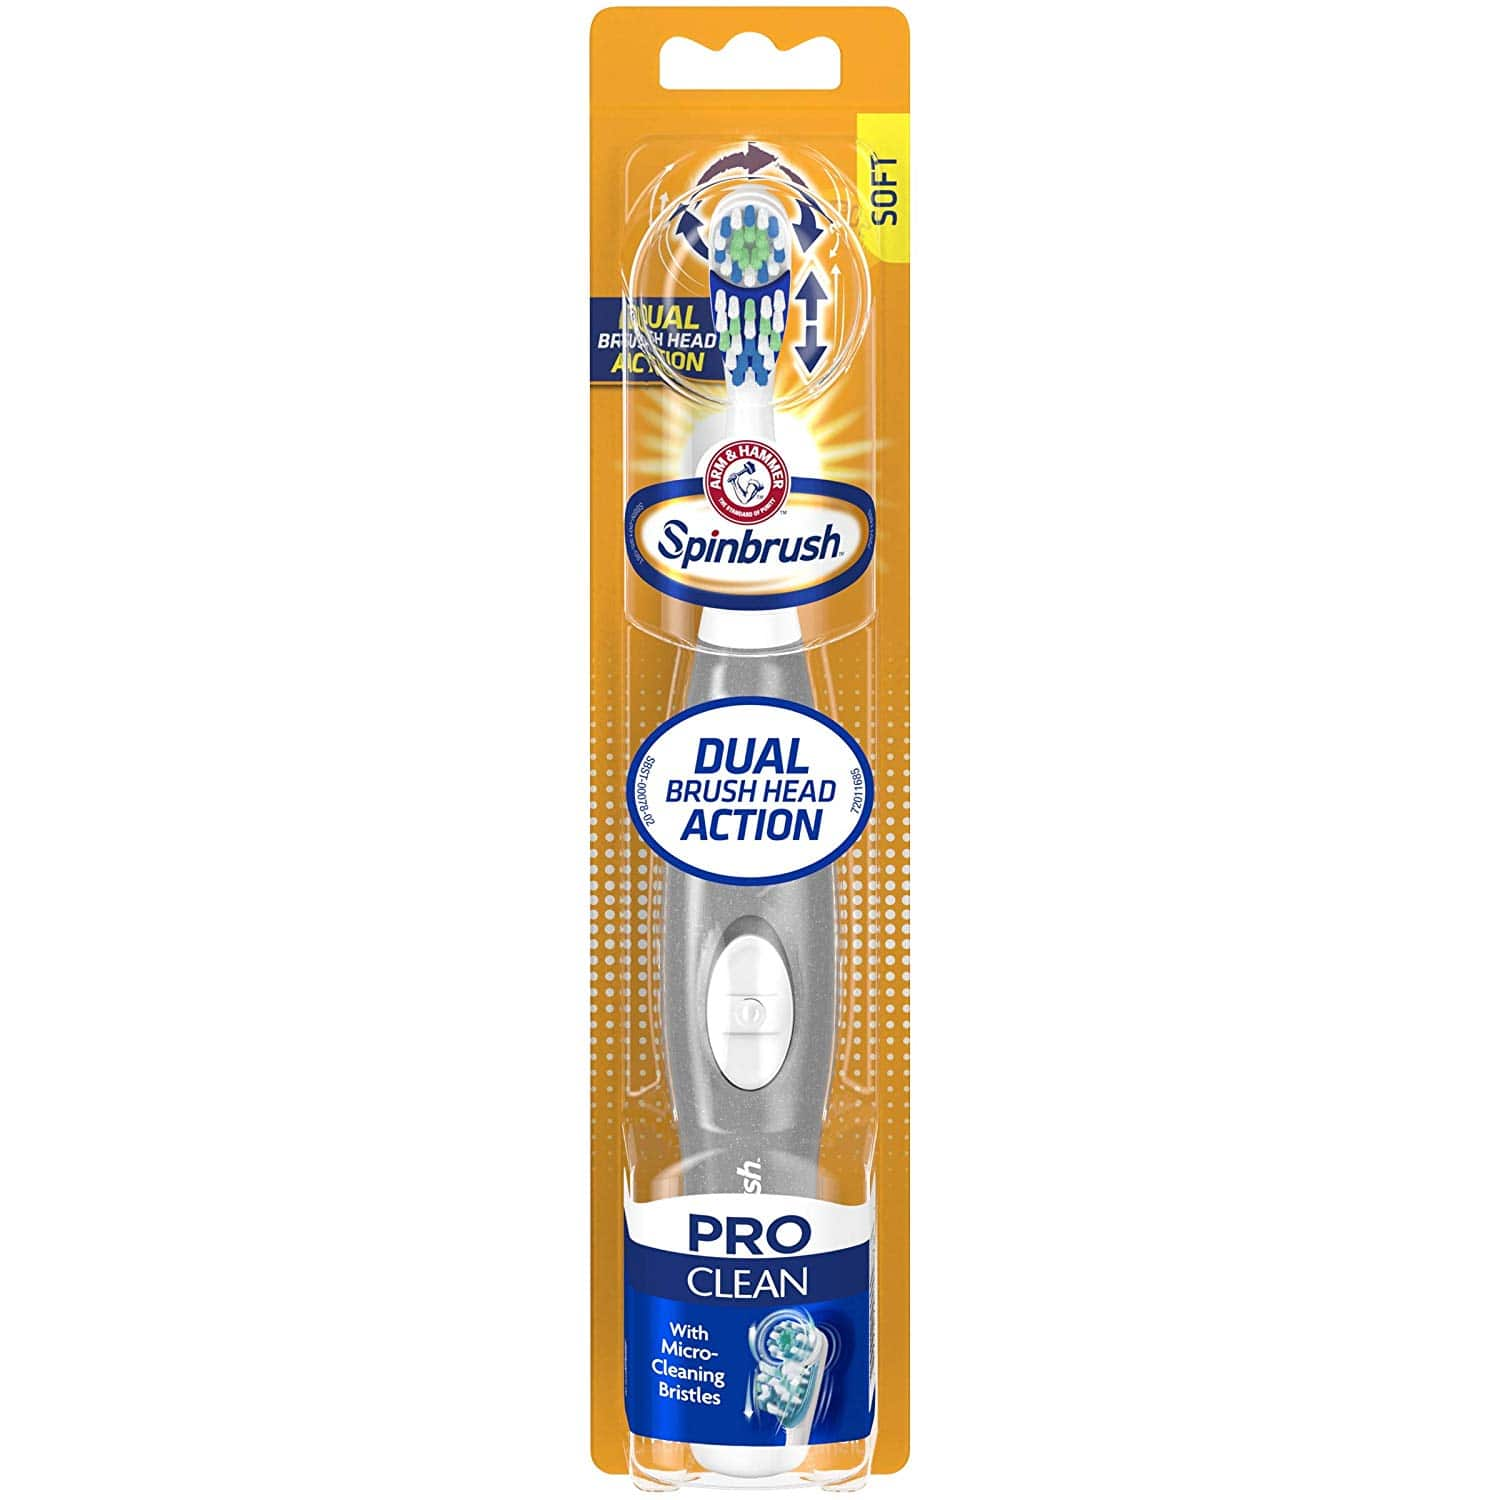 Arm & Hammer Spinbrush Pro Series Daily Clean Battery Toothbrush, Soft - $3.32 w/S&S, (As Low As - $2.97)